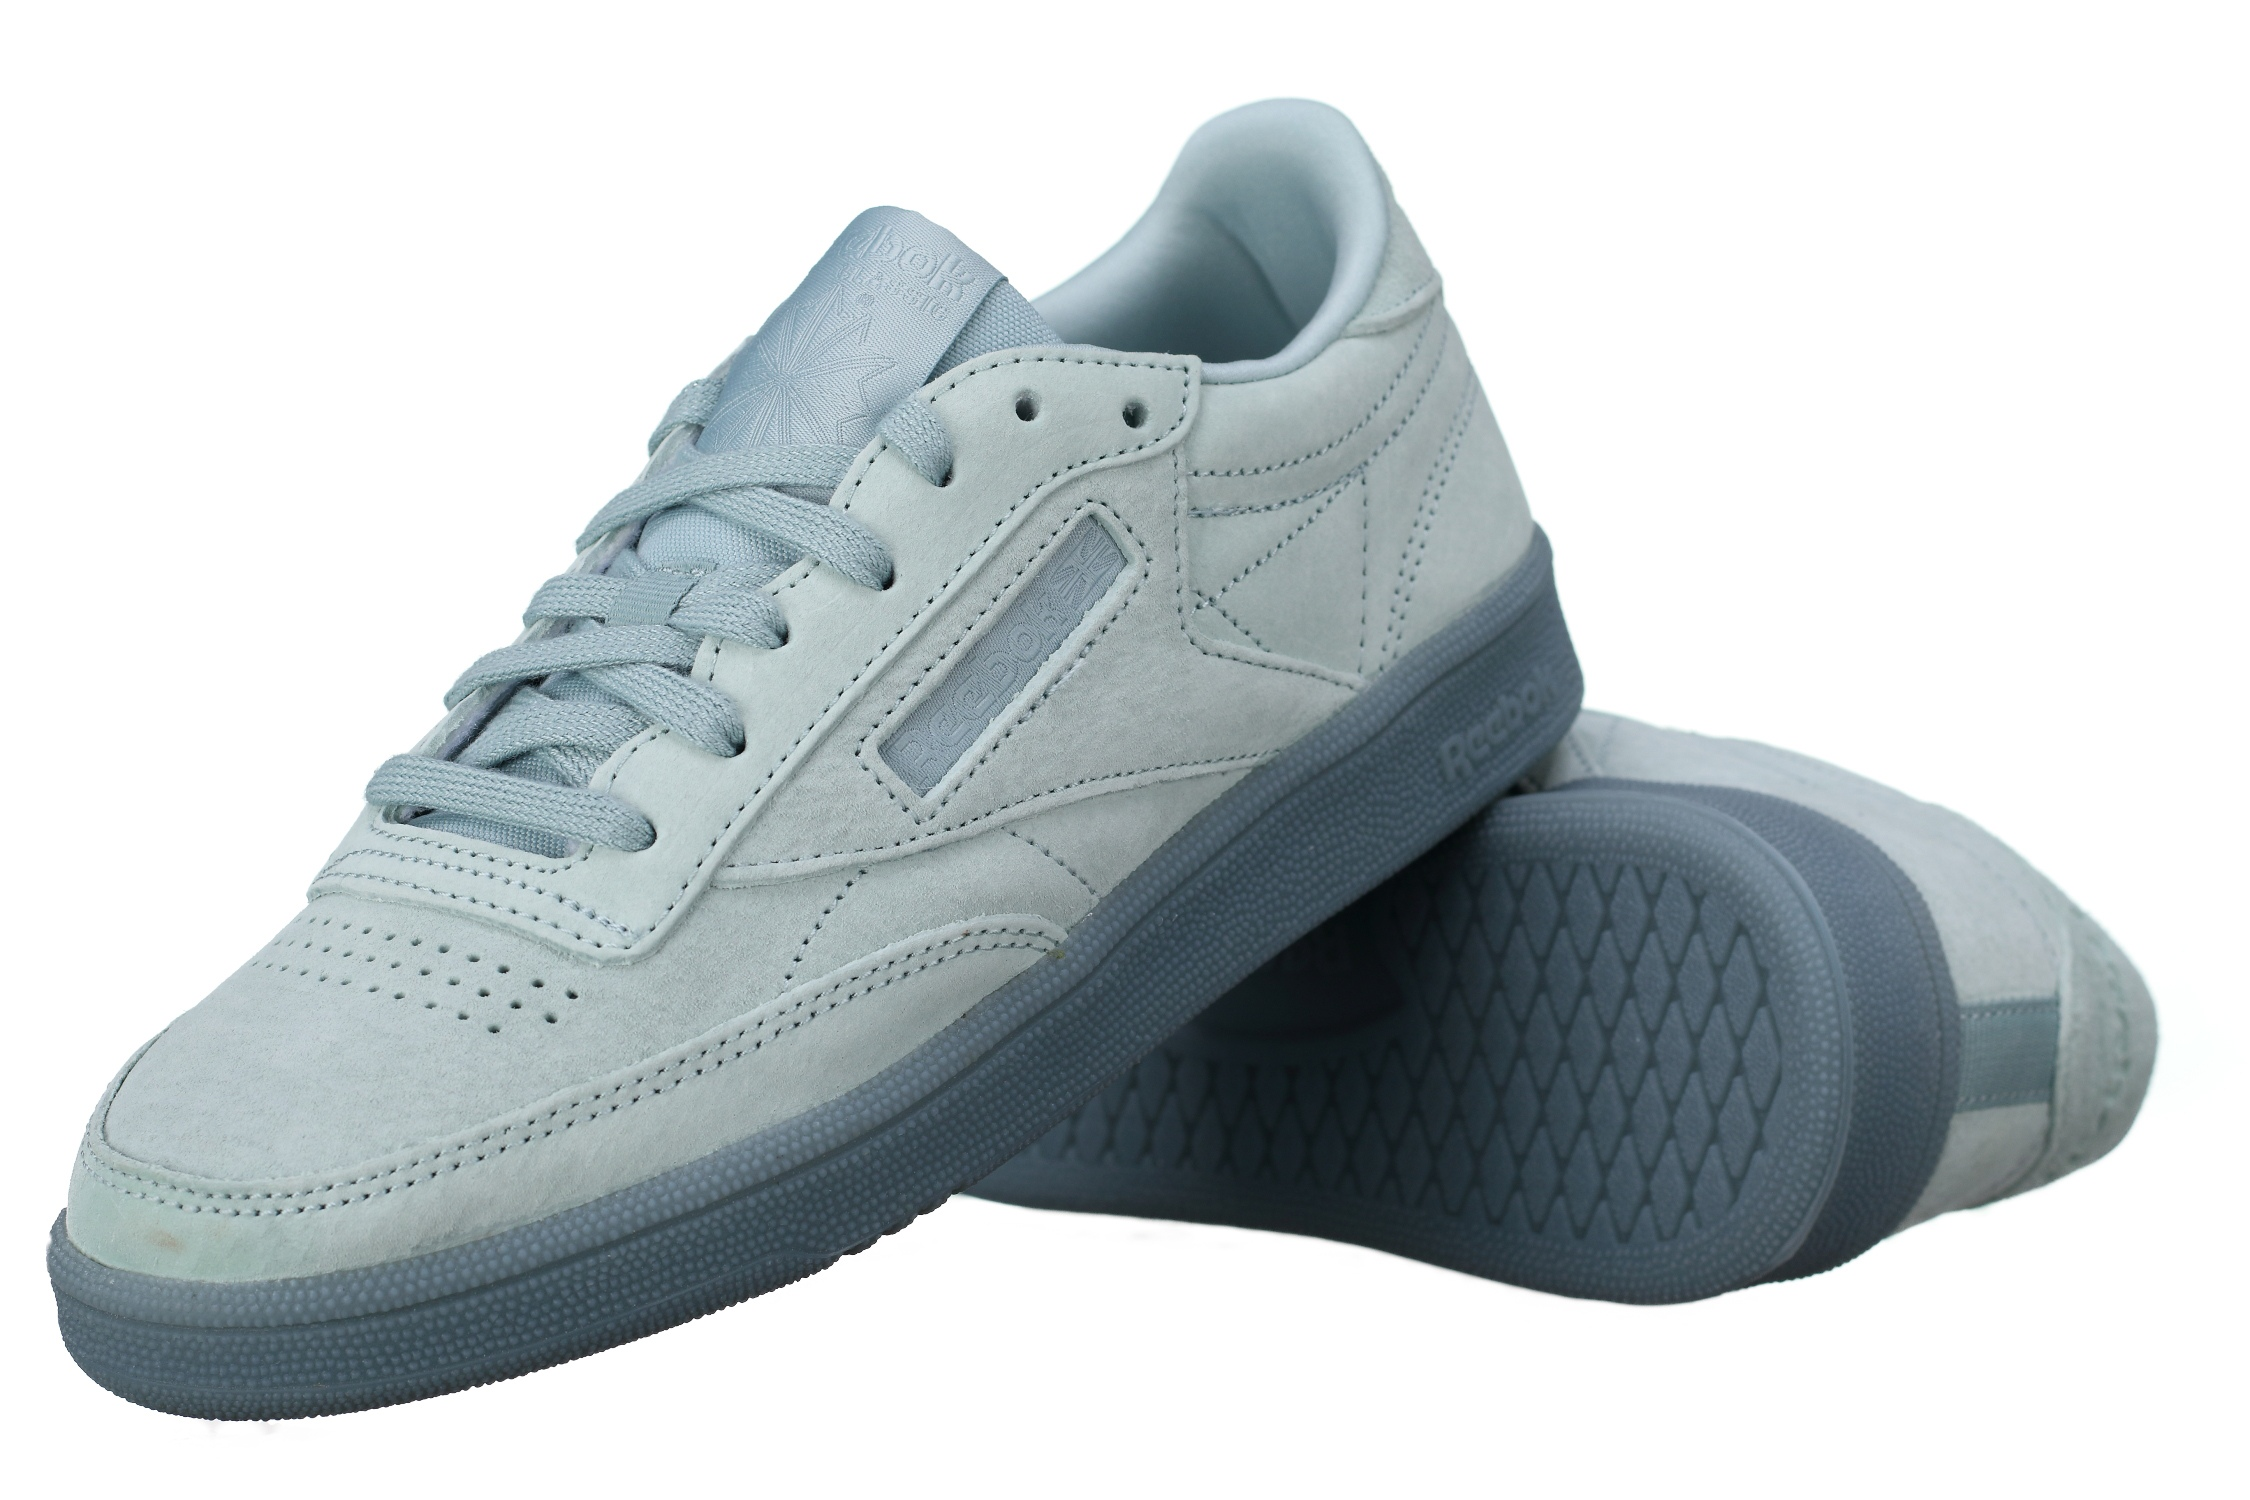 http://www.leadermode.com/127127/reebok-club-c-85-lace-bs6528-grey.jpg